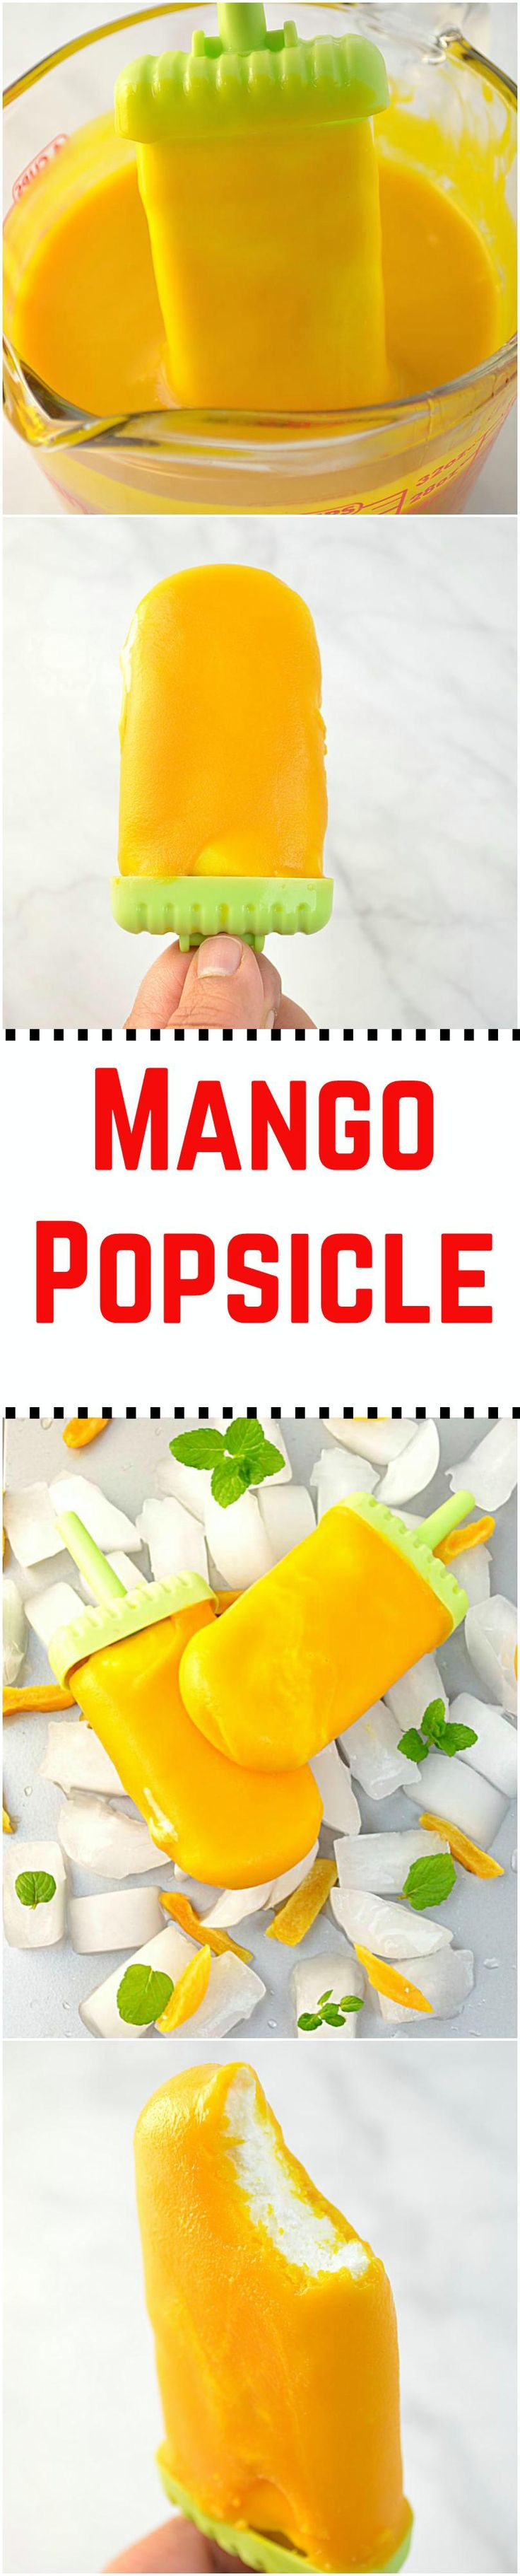 With summer right upon us, it's time to enjoy all our favorite frozen treats! And what could be better than a rich, creamy and no - cook homemade mango popsicles that are super easy to make and are a perfect treat to beat the summer heat!